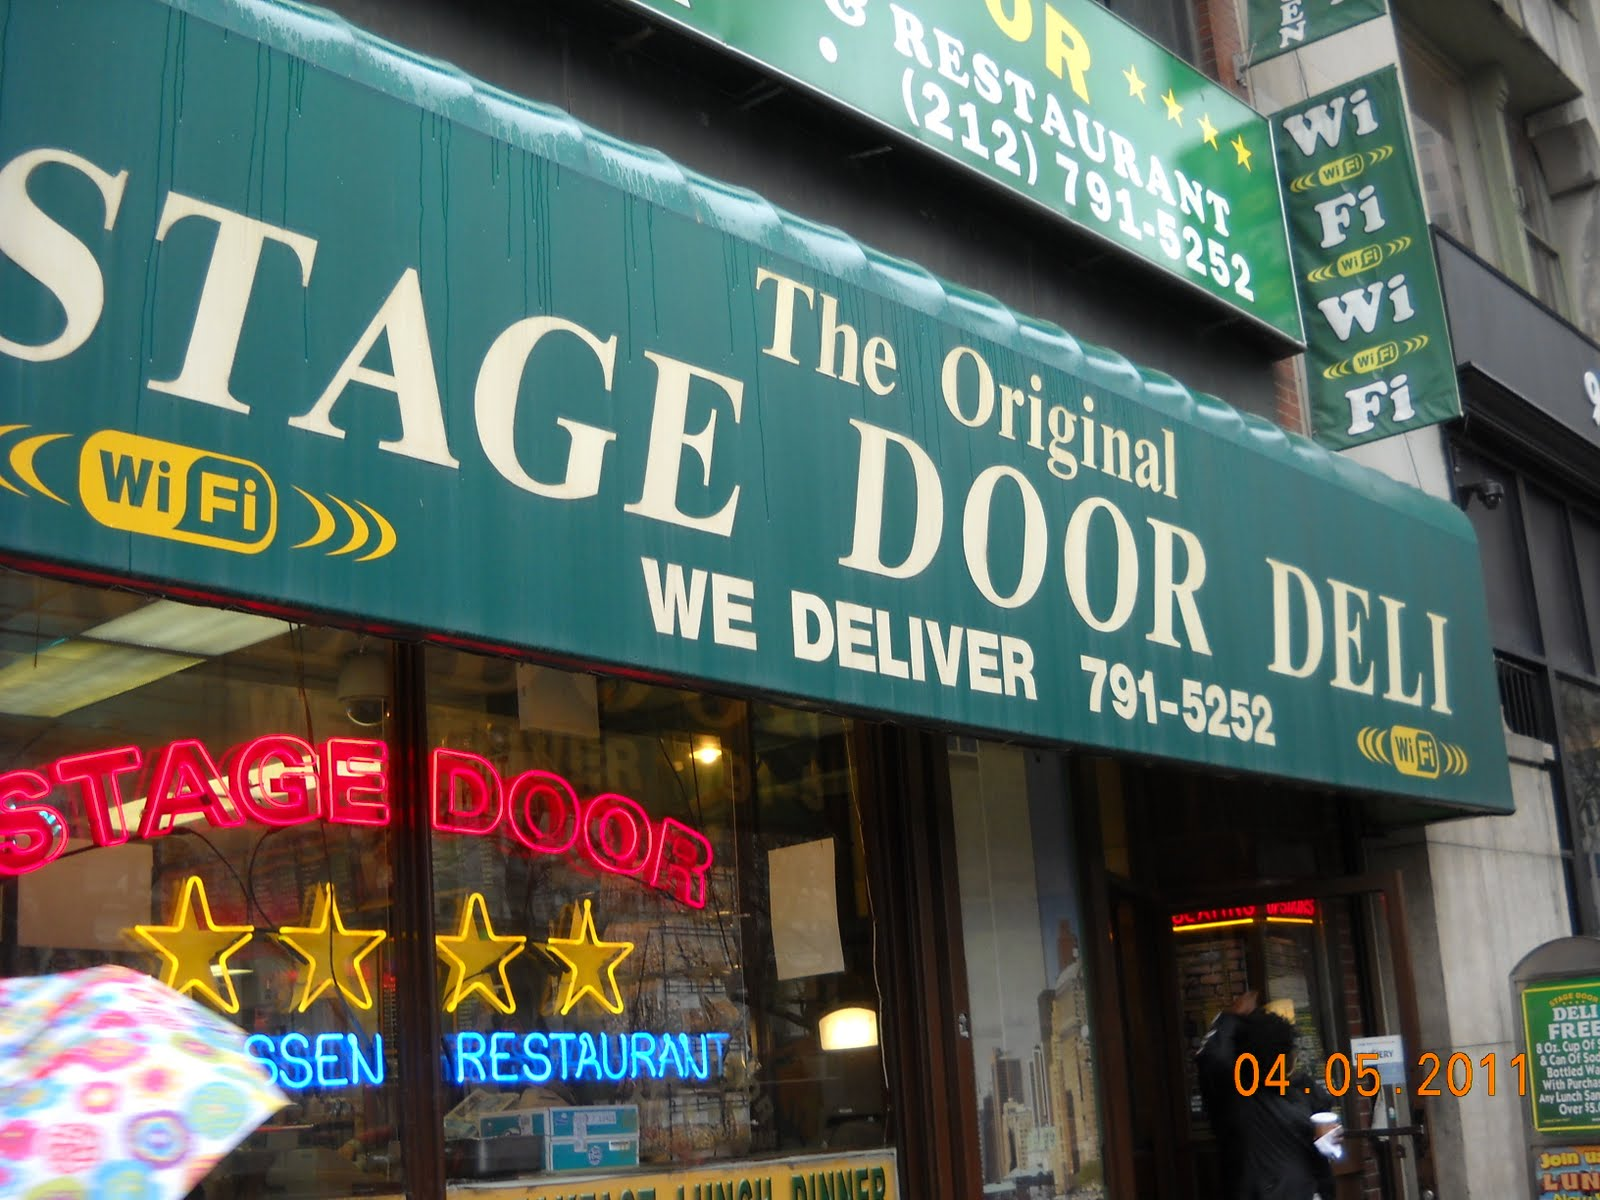 eating my way through oc spotlight on sandwiches at stage door deli